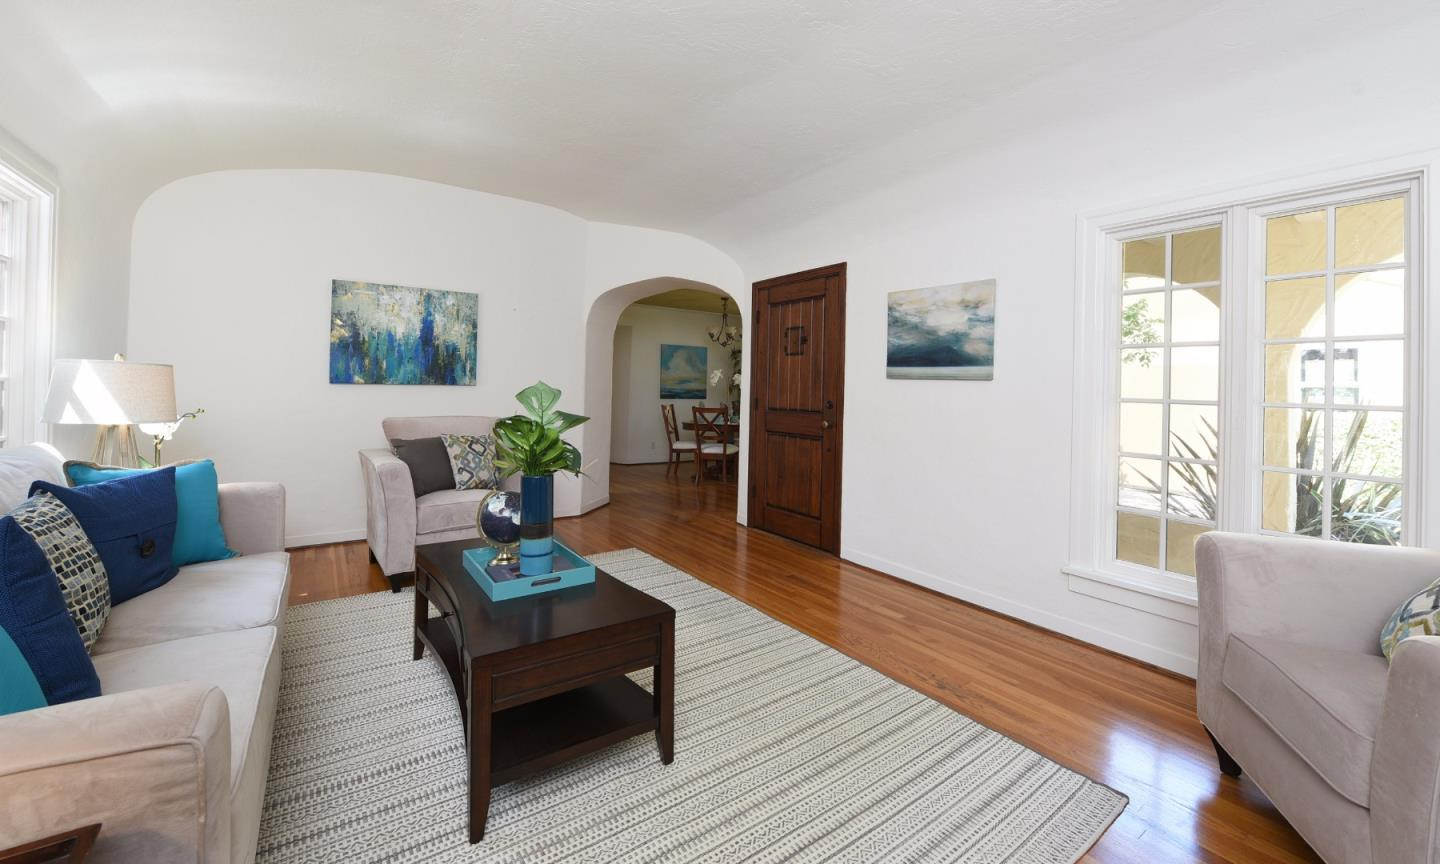 Additional photo for property listing at 1731 Glen Una Avenue  San Jose, カリフォルニア 95125 アメリカ合衆国